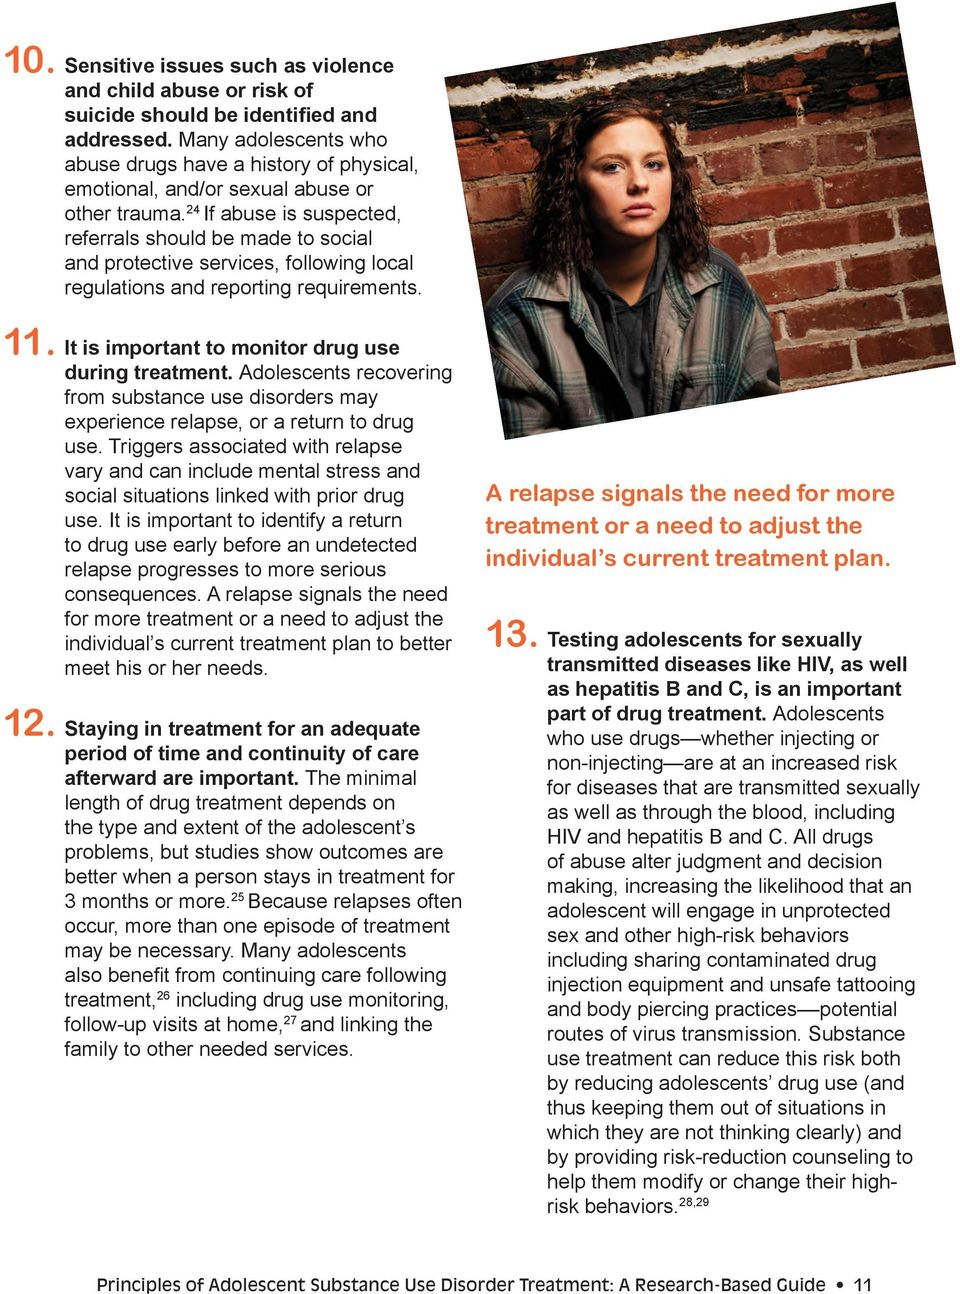 24 If abuse is suspected, referrals should be made to social and protective services, following local regulations and reporting requirements. 11. It is important to monitor drug use during treatment.